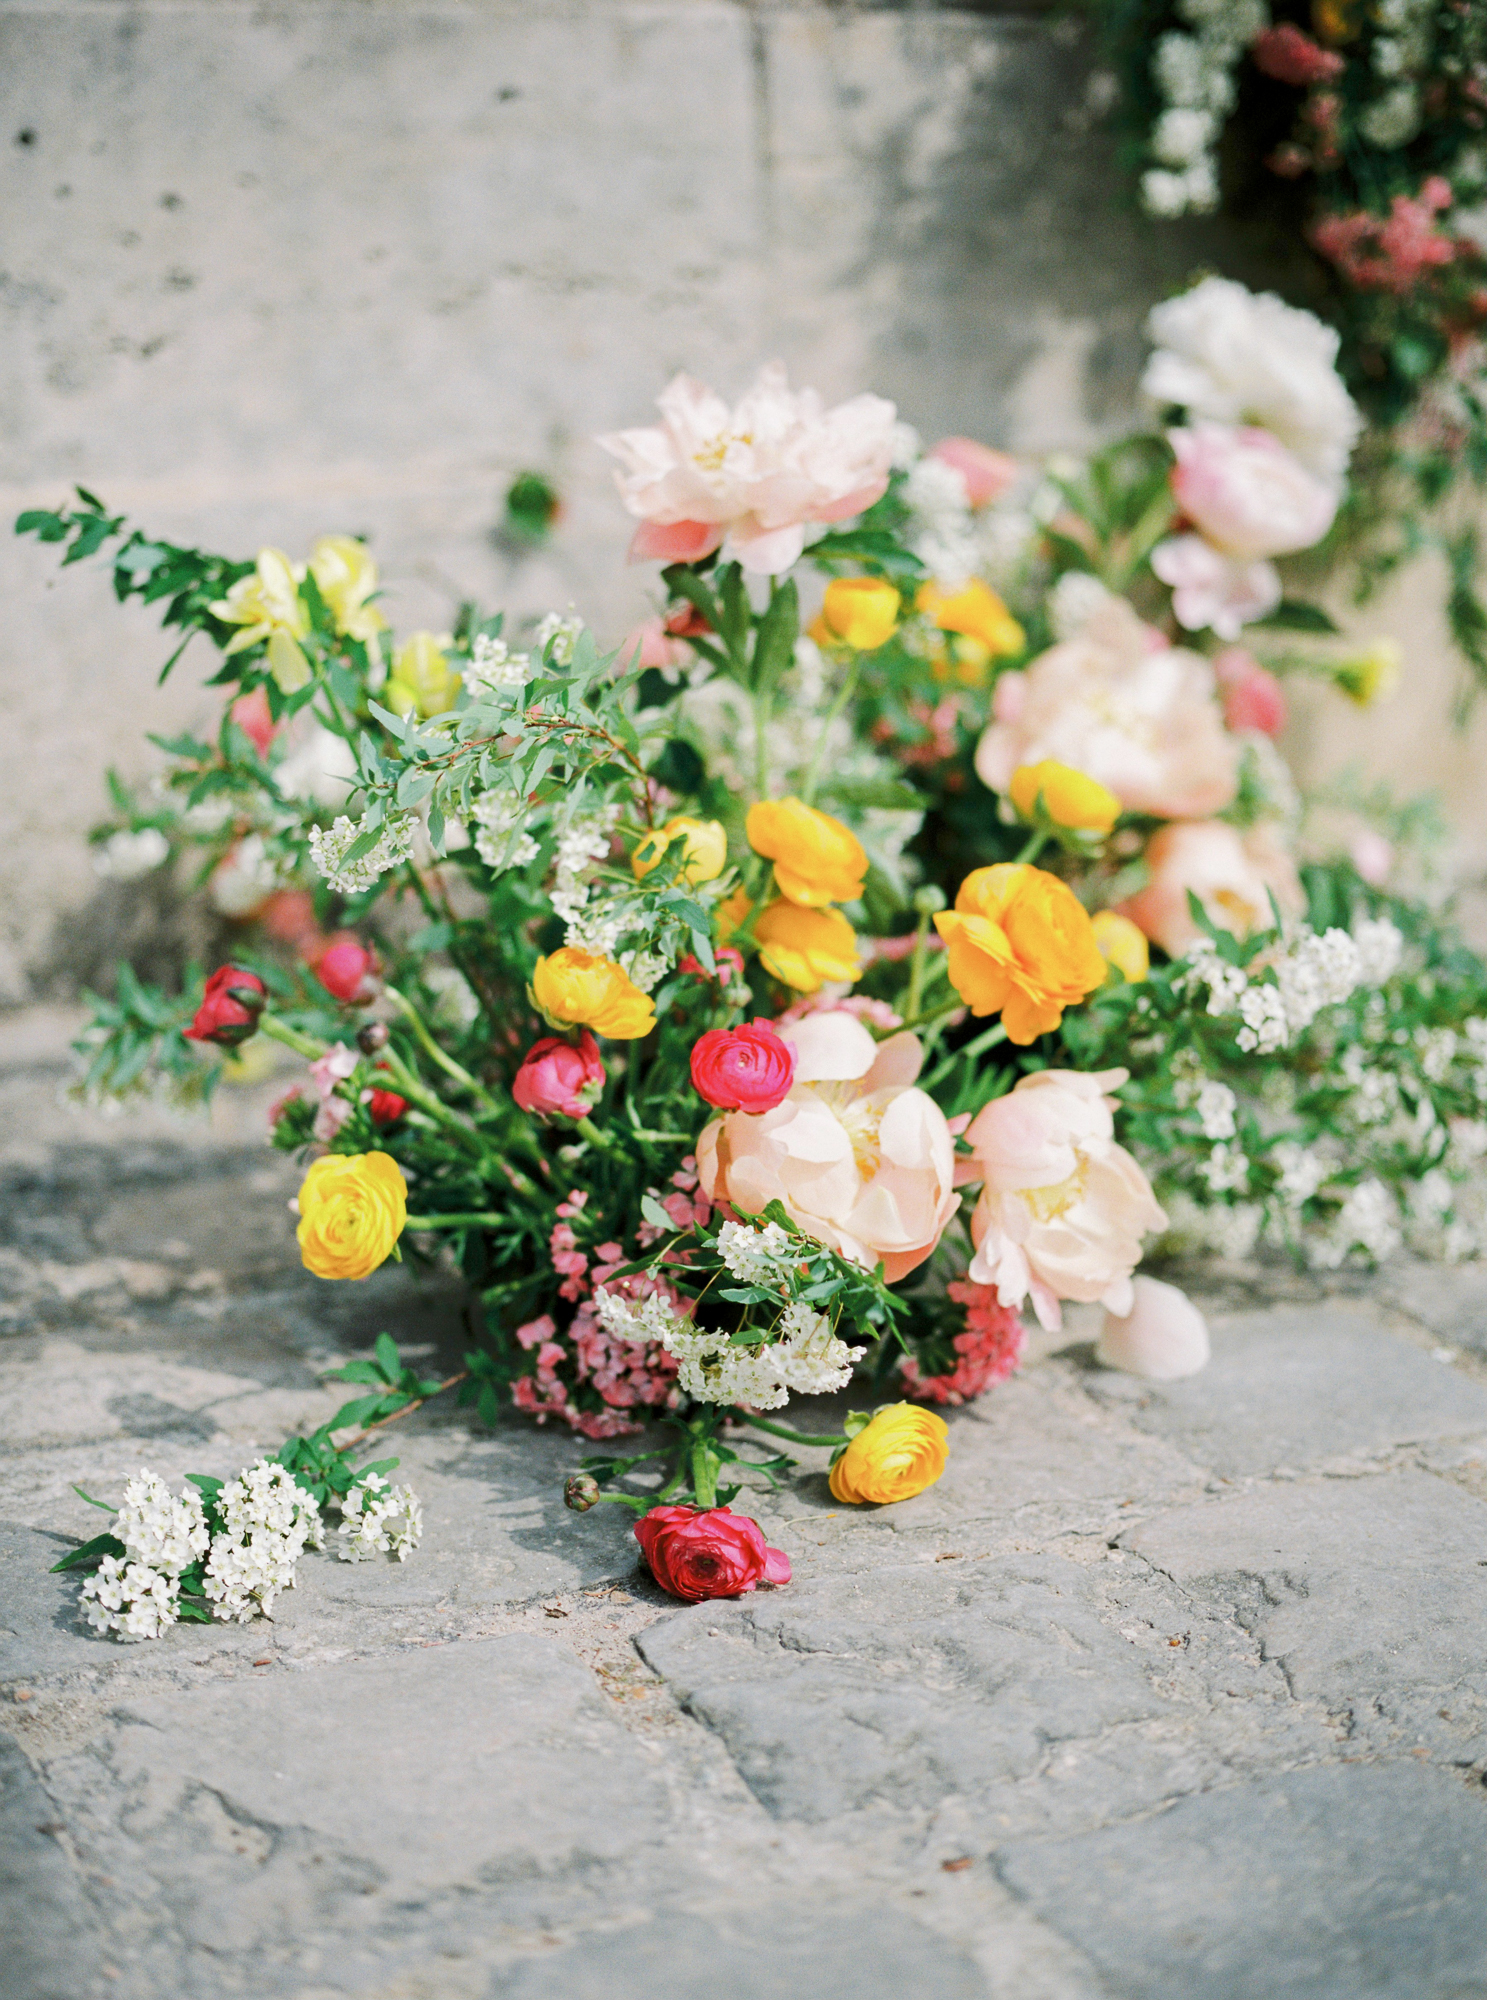 travellur_photoshoot__summer_in_versailles_wedding_flowers_bridal_luxe_shoot_floral_france_isibeal_studio_beauty_wedding_france.jpg